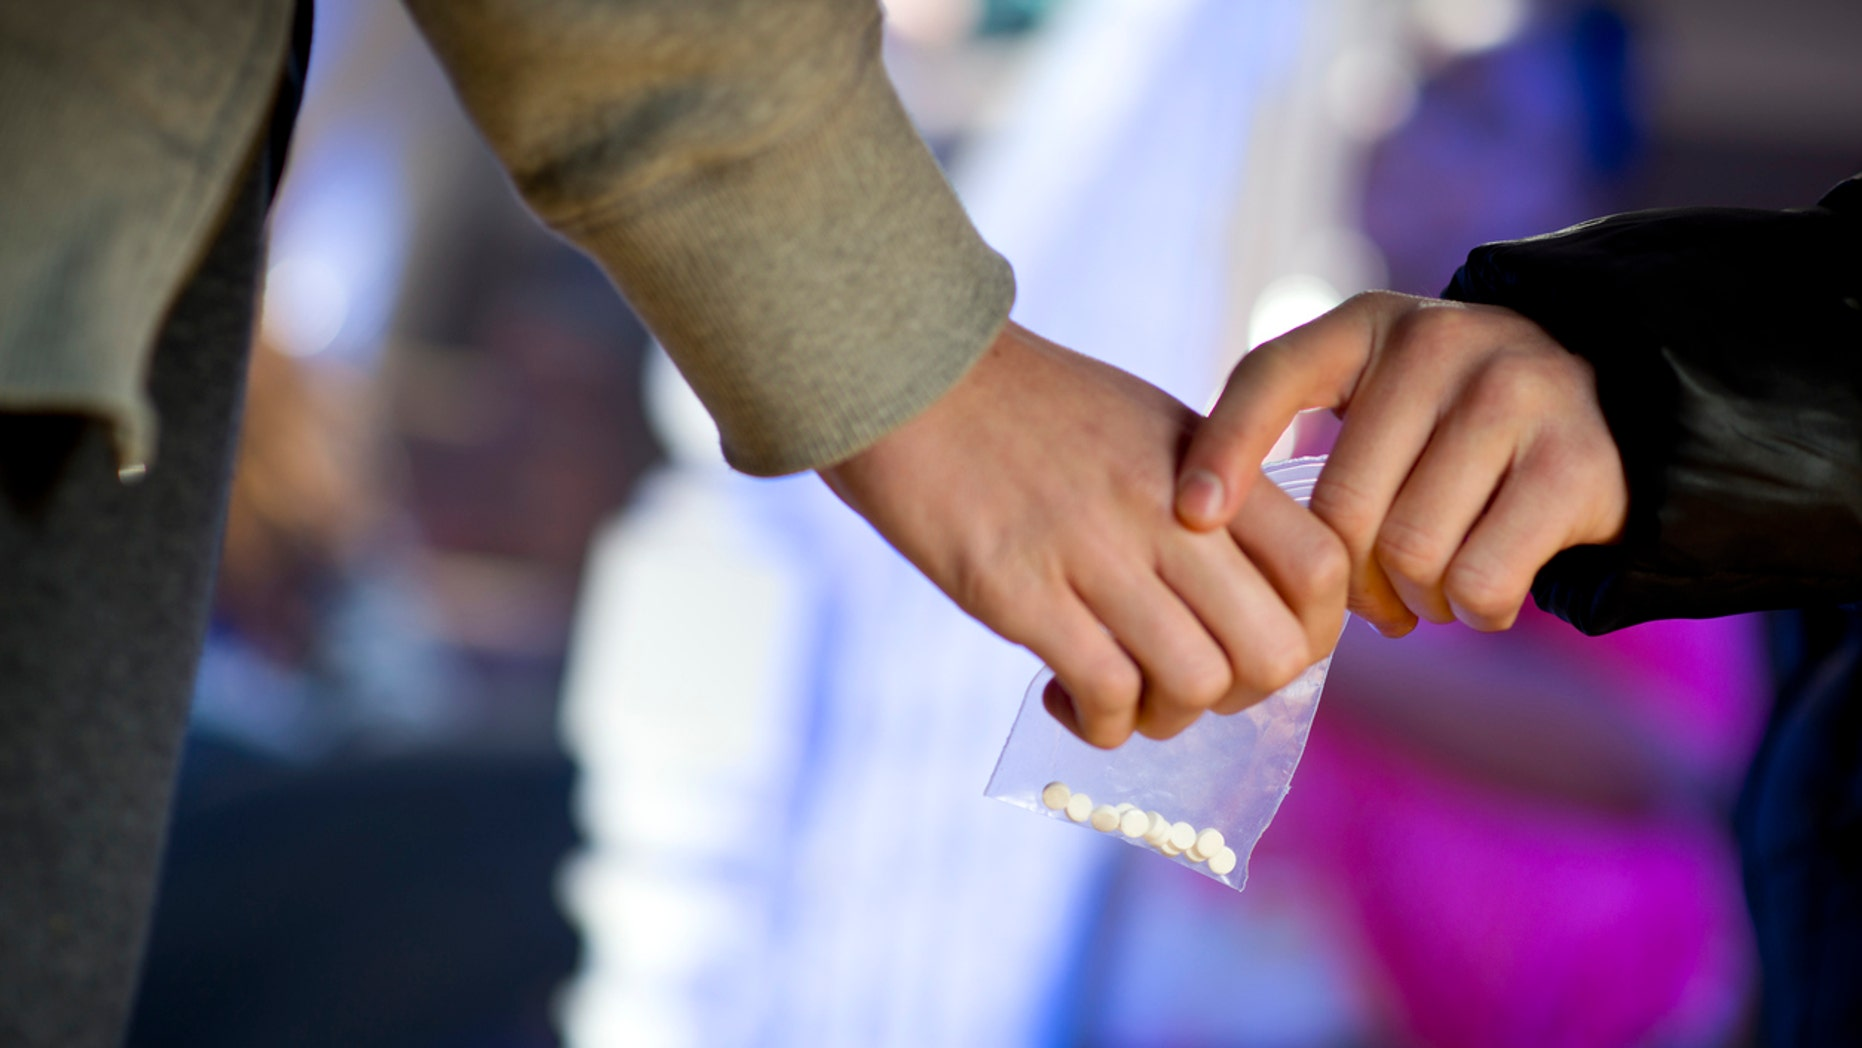 Researchers found that by age 26, upper-middle-class young adults' lifetime chances of being diagnosed with an addiction to drugs or alcohol were two to three times higher, on average, than the national rates for men and women of the same age.